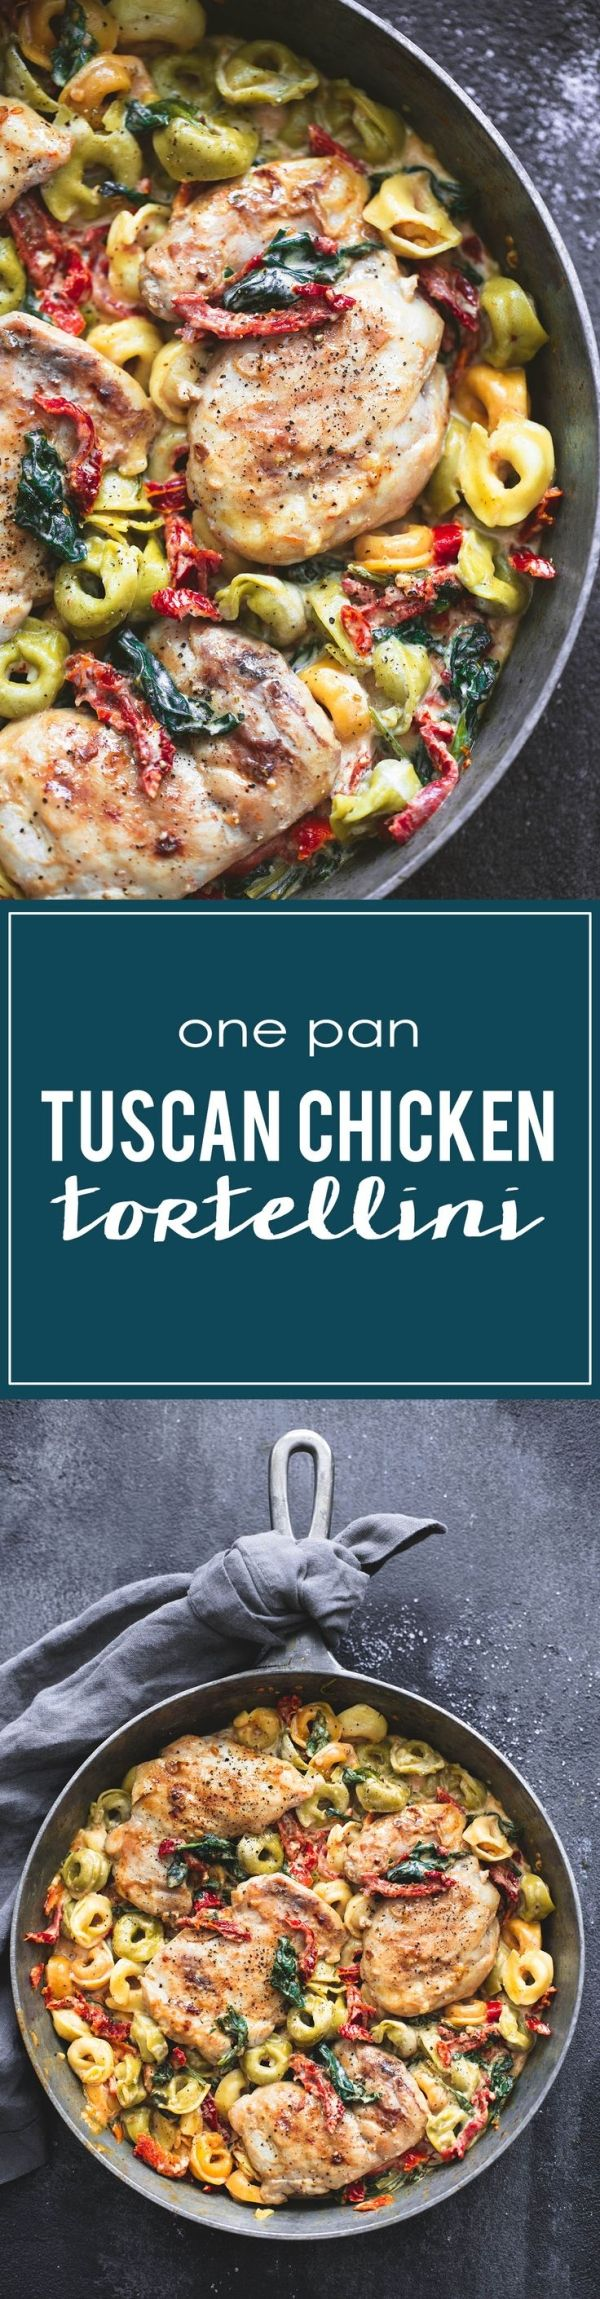 One Pan Tuscan Chicken Tortellini | lecremedelacrumb.com by georgette